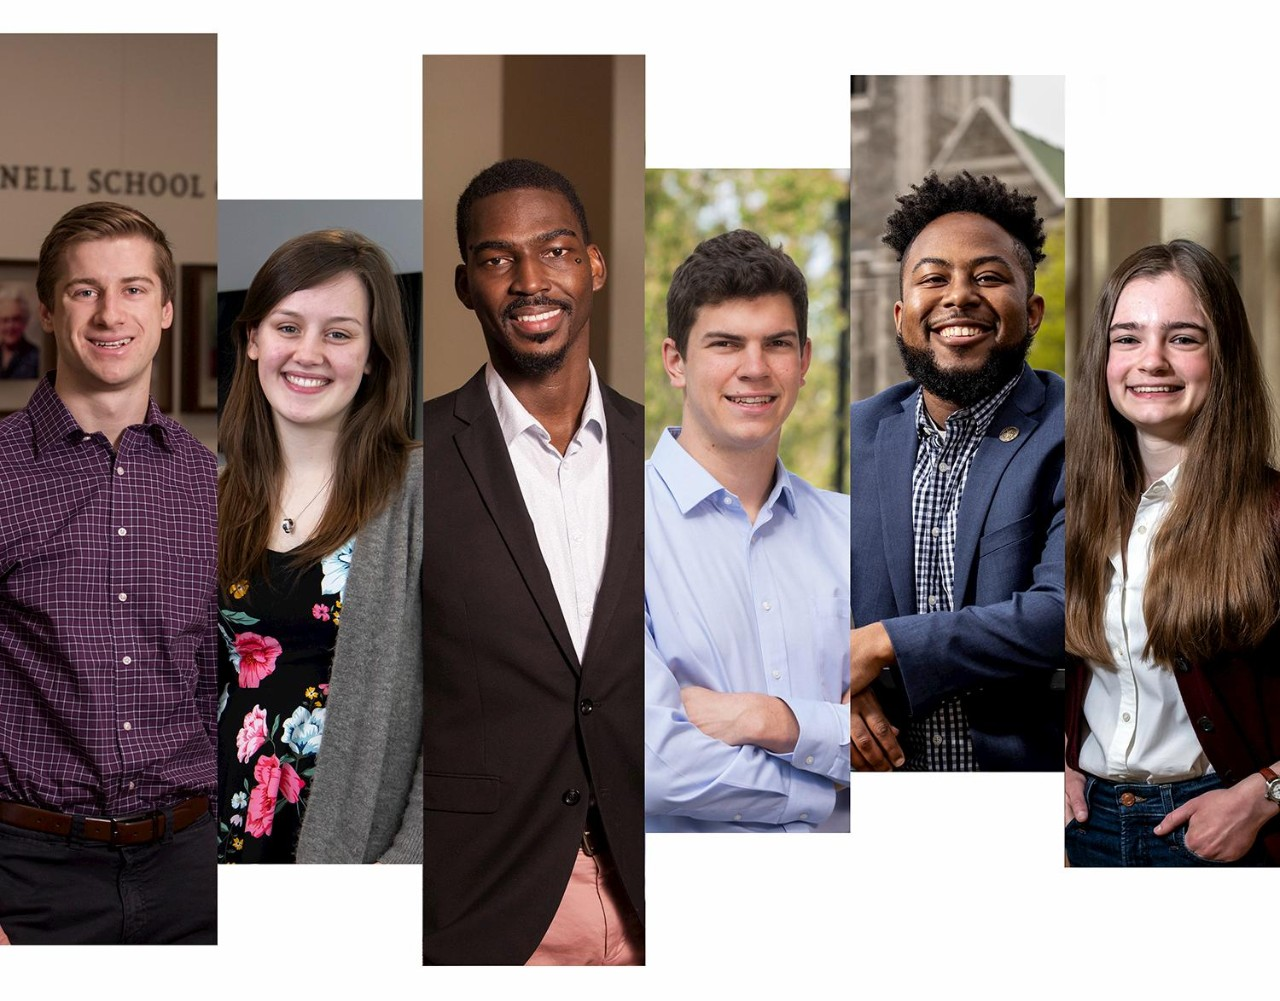 The 2019 Class of 'Seniors to Remember' includes Daniel Croteau, Natalee Deaette, Gawain Dornelly, Branick Weix, Anthony M. Smith, and Annie Haws.